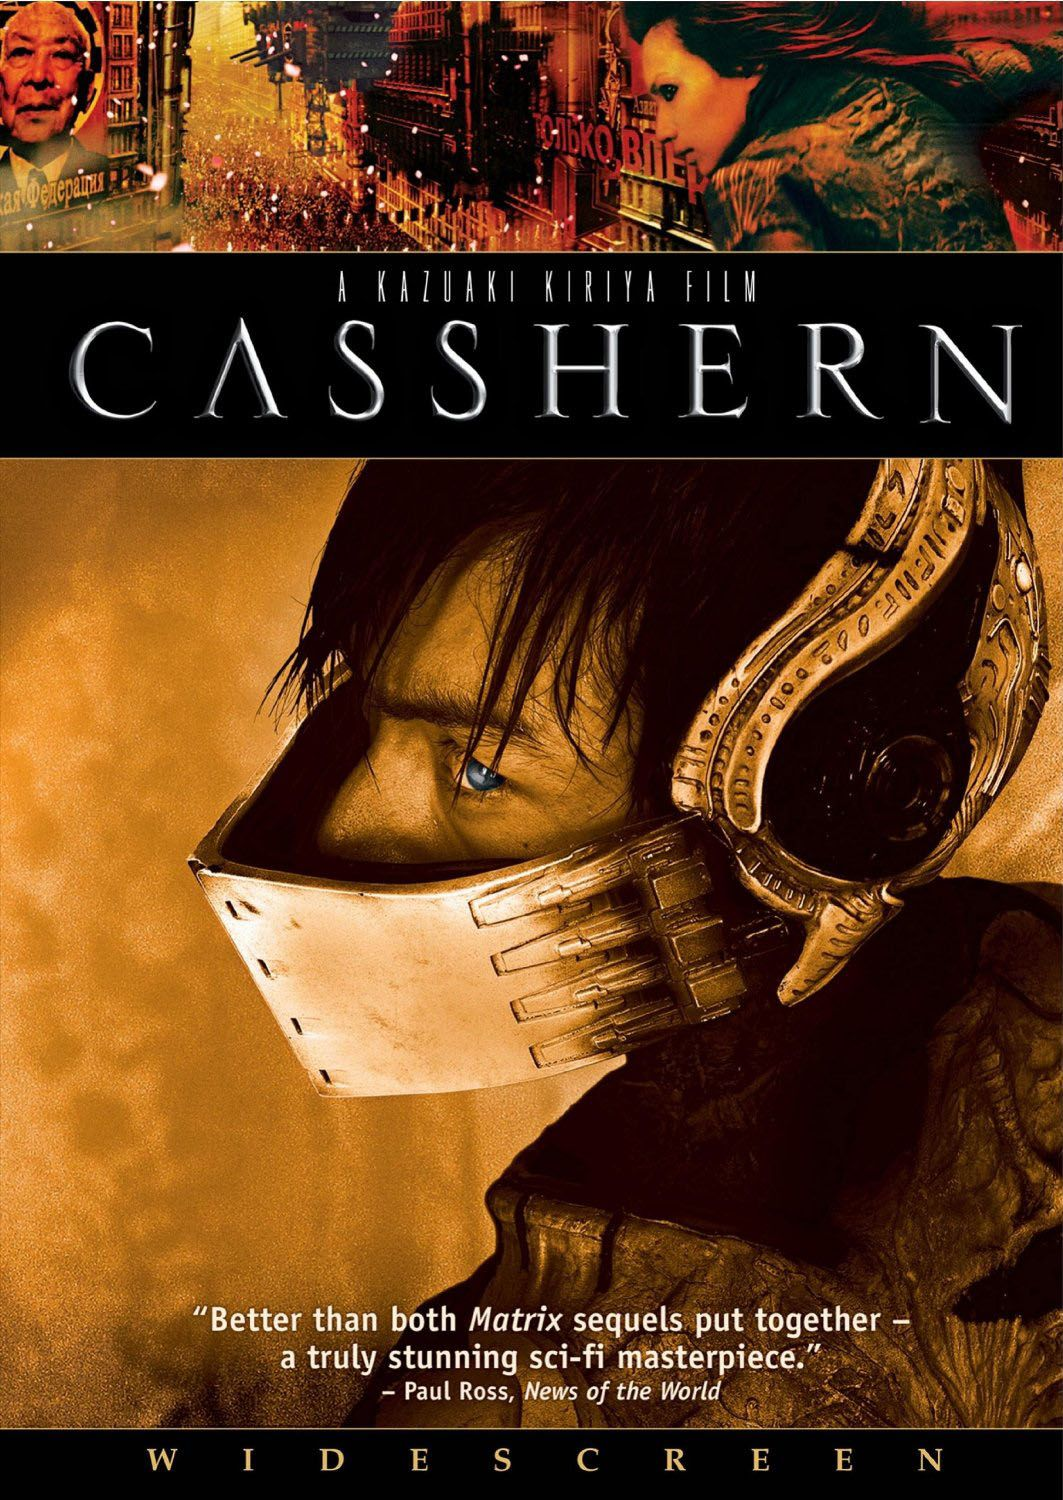 Casshern 2004 live action movie of the japanese